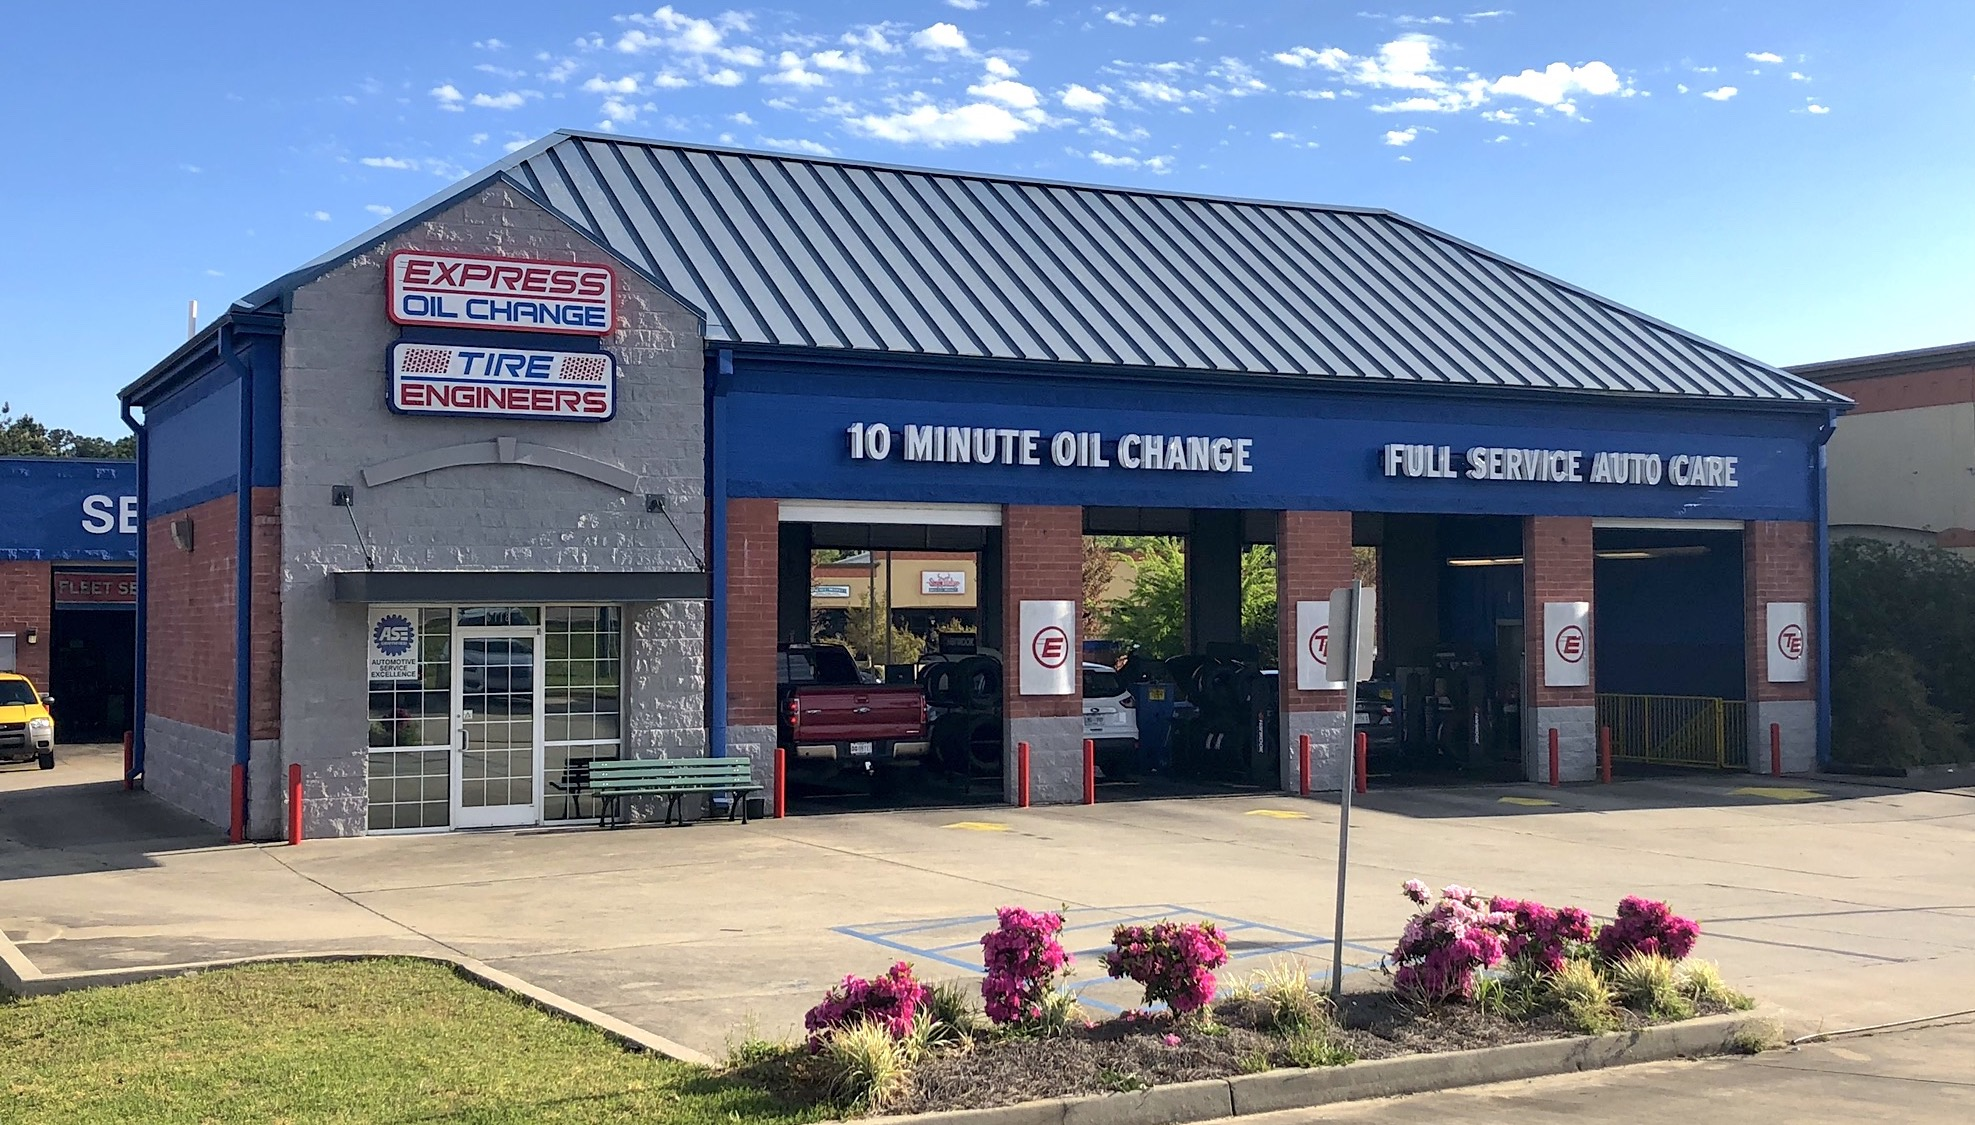 Express Oil Change & Tire Engineers at Hattiesburg, MS - Highway 98 store